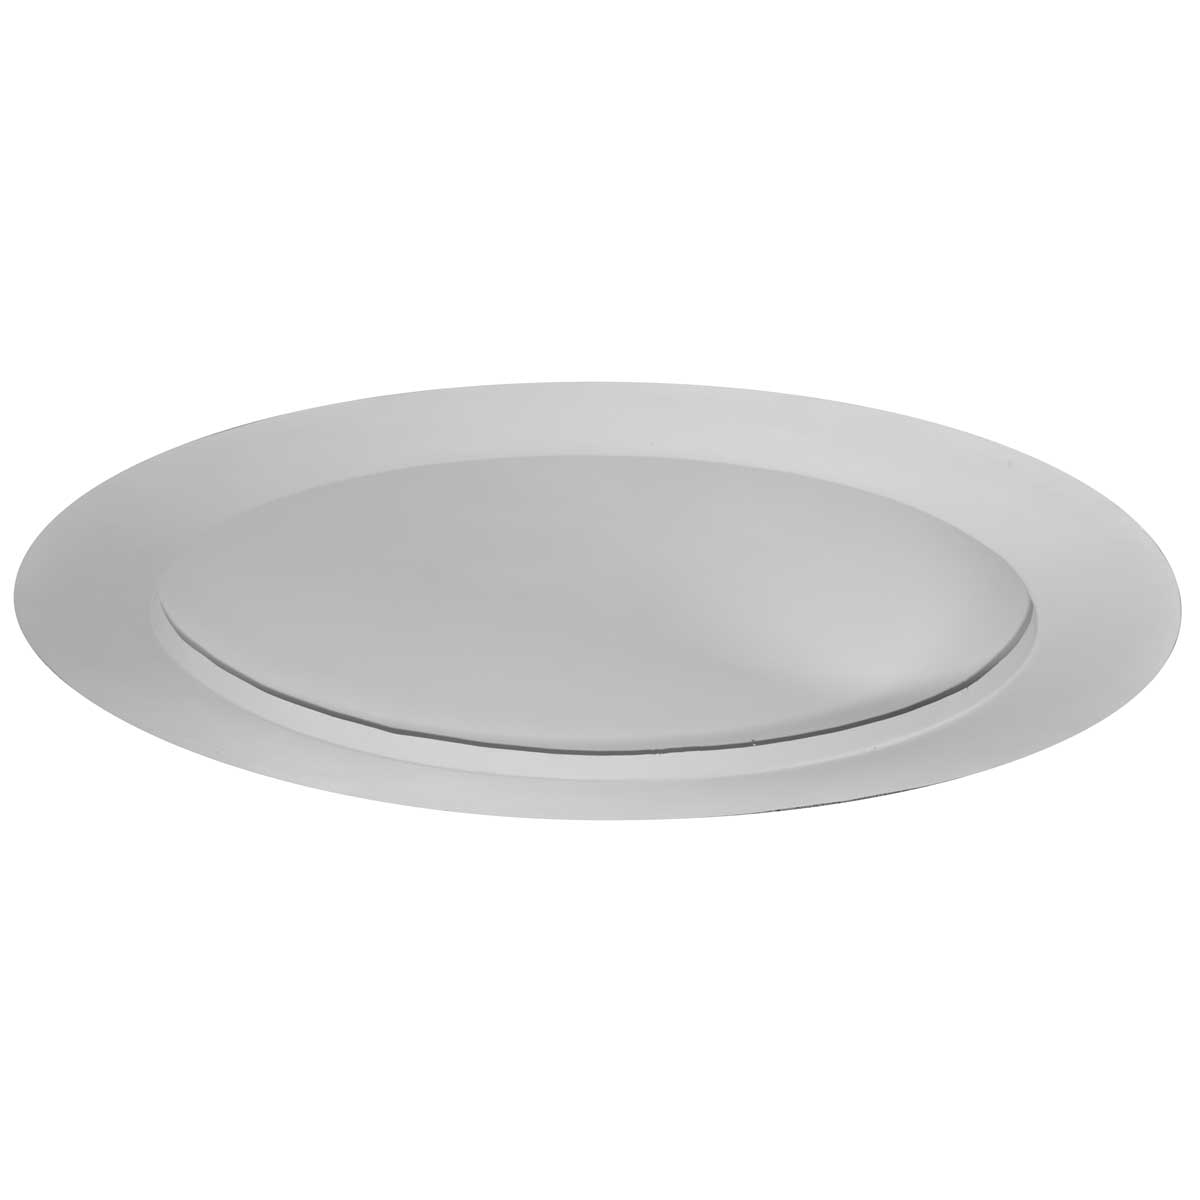 """DOME38AR 38-5/8""""OD x 35-7/8""""ID x 7""""D Artisan Ceiling Dome with Light Ring (35-5/8""""Diameter x 7-1/2""""D Rough Opening)"""